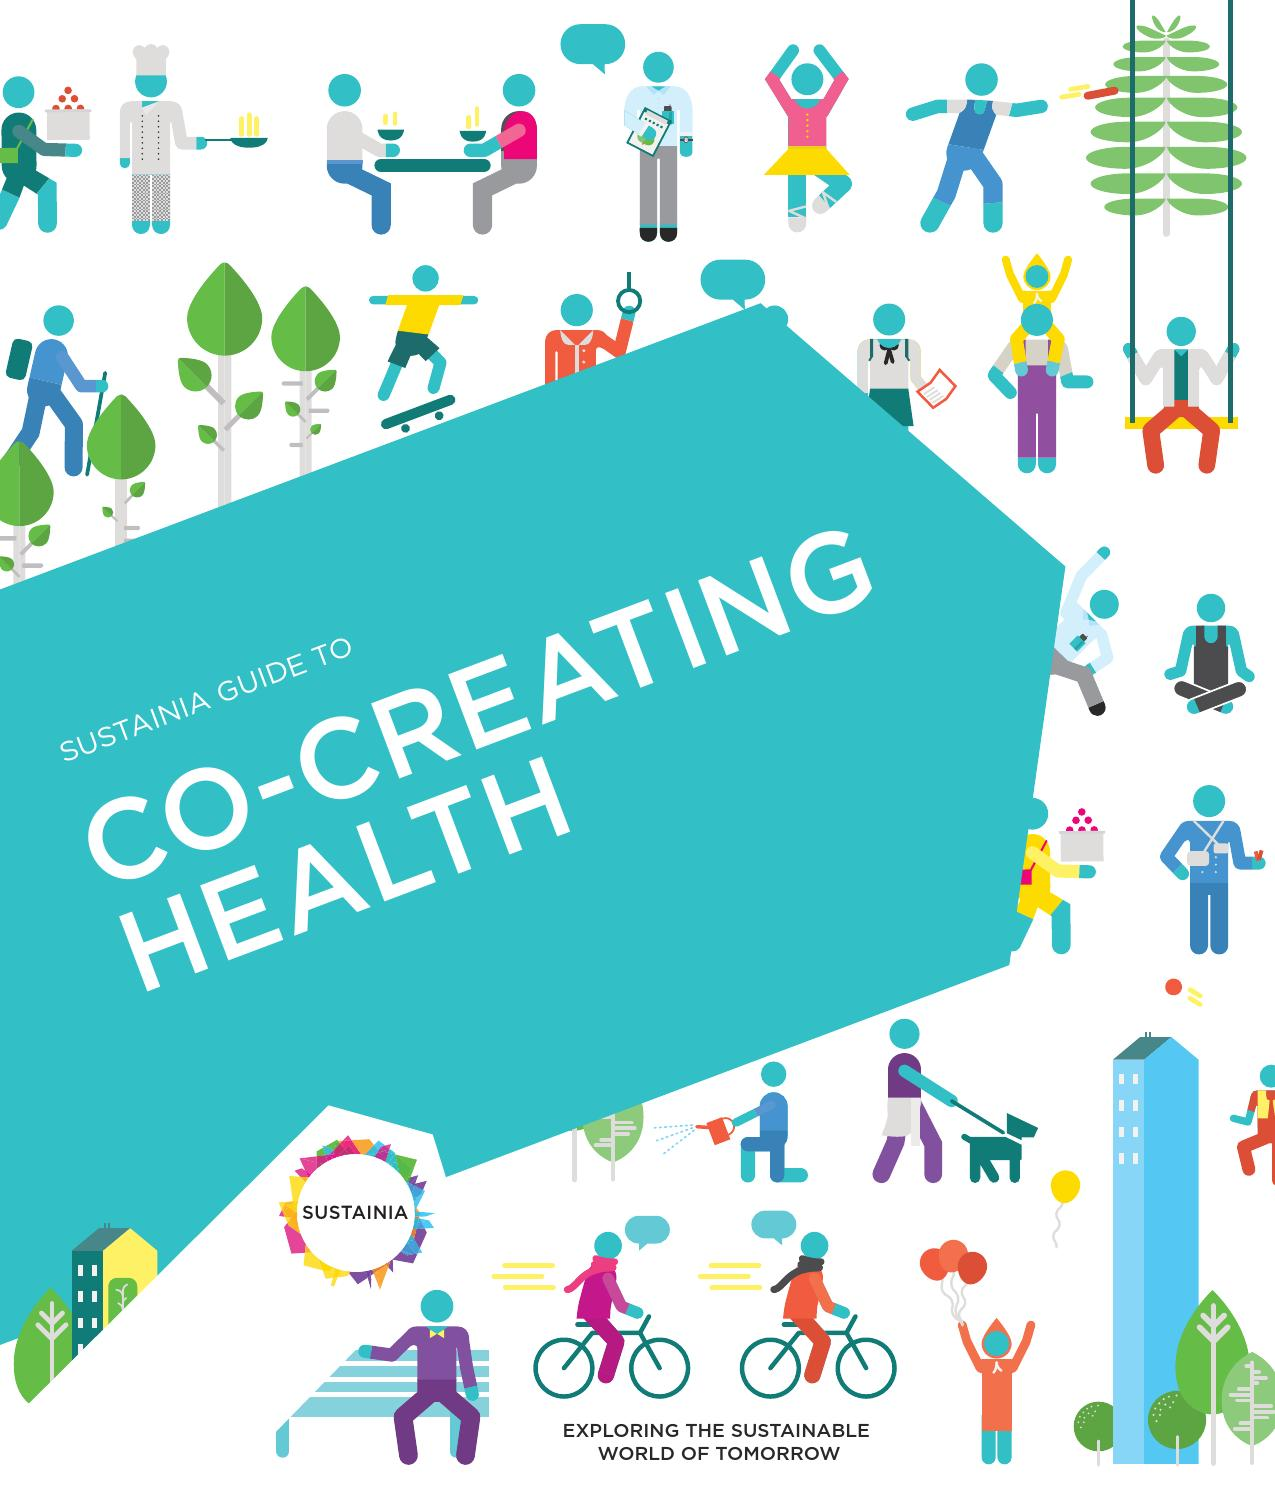 The Sustainia Guide To Co Creating Health By Issuu Google Play Gift Card Rp 150000